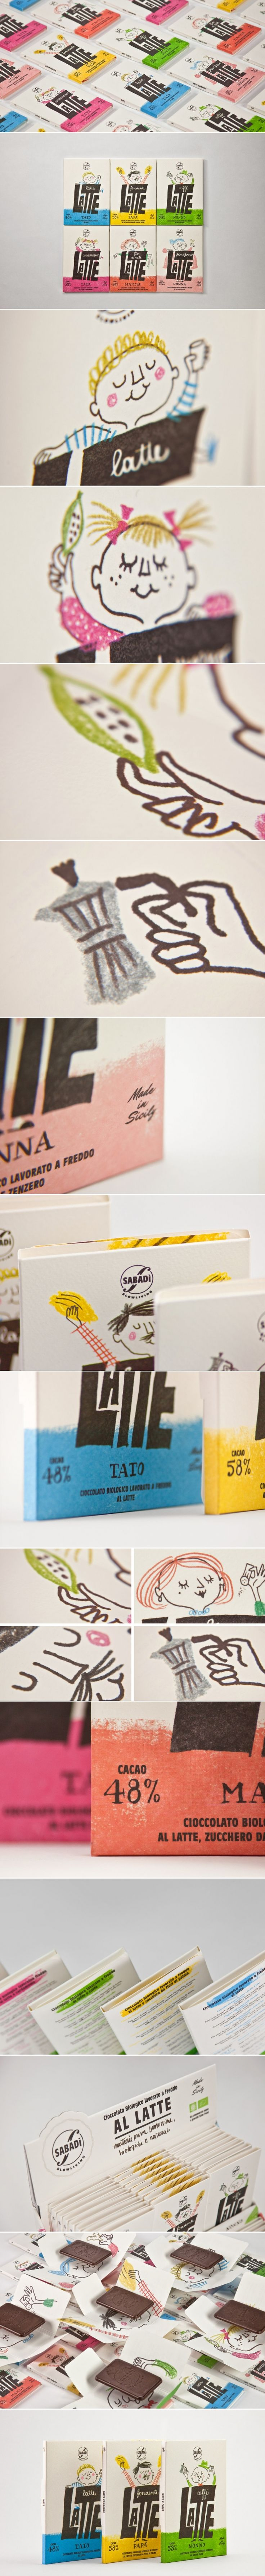 LATTE by Sabadì — The Dieline - Branding & Packaging Design